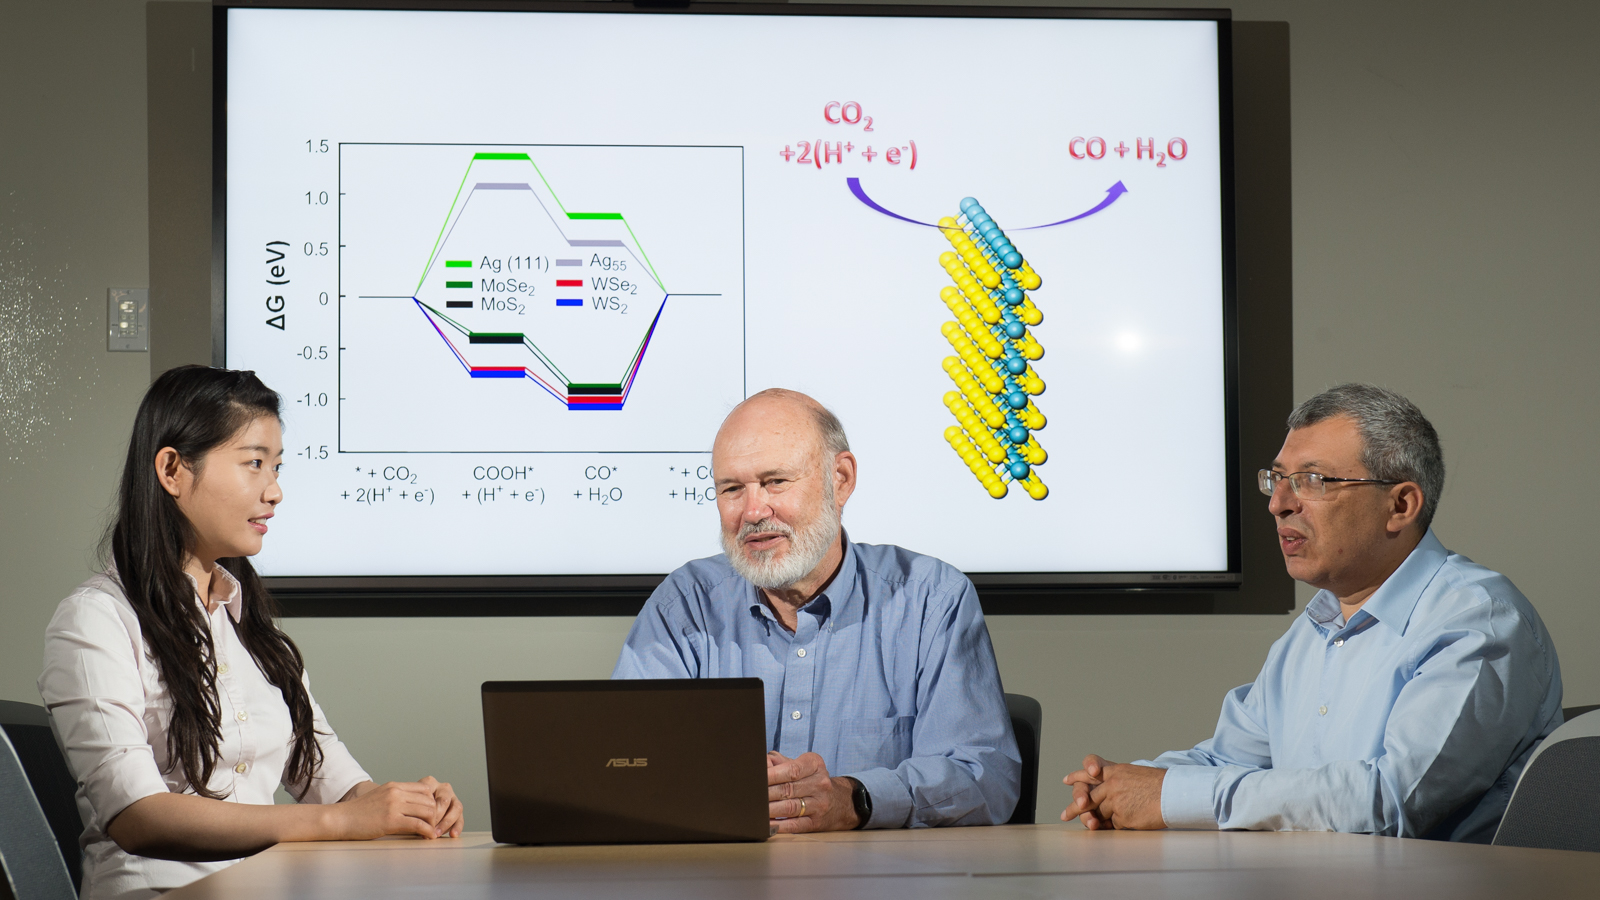 Argonne postdoctoral researcher Cong Liu and chemists Larry Curtiss and Peter Zapol discuss their recent research results on converting carbon dioxide into usable fuel.